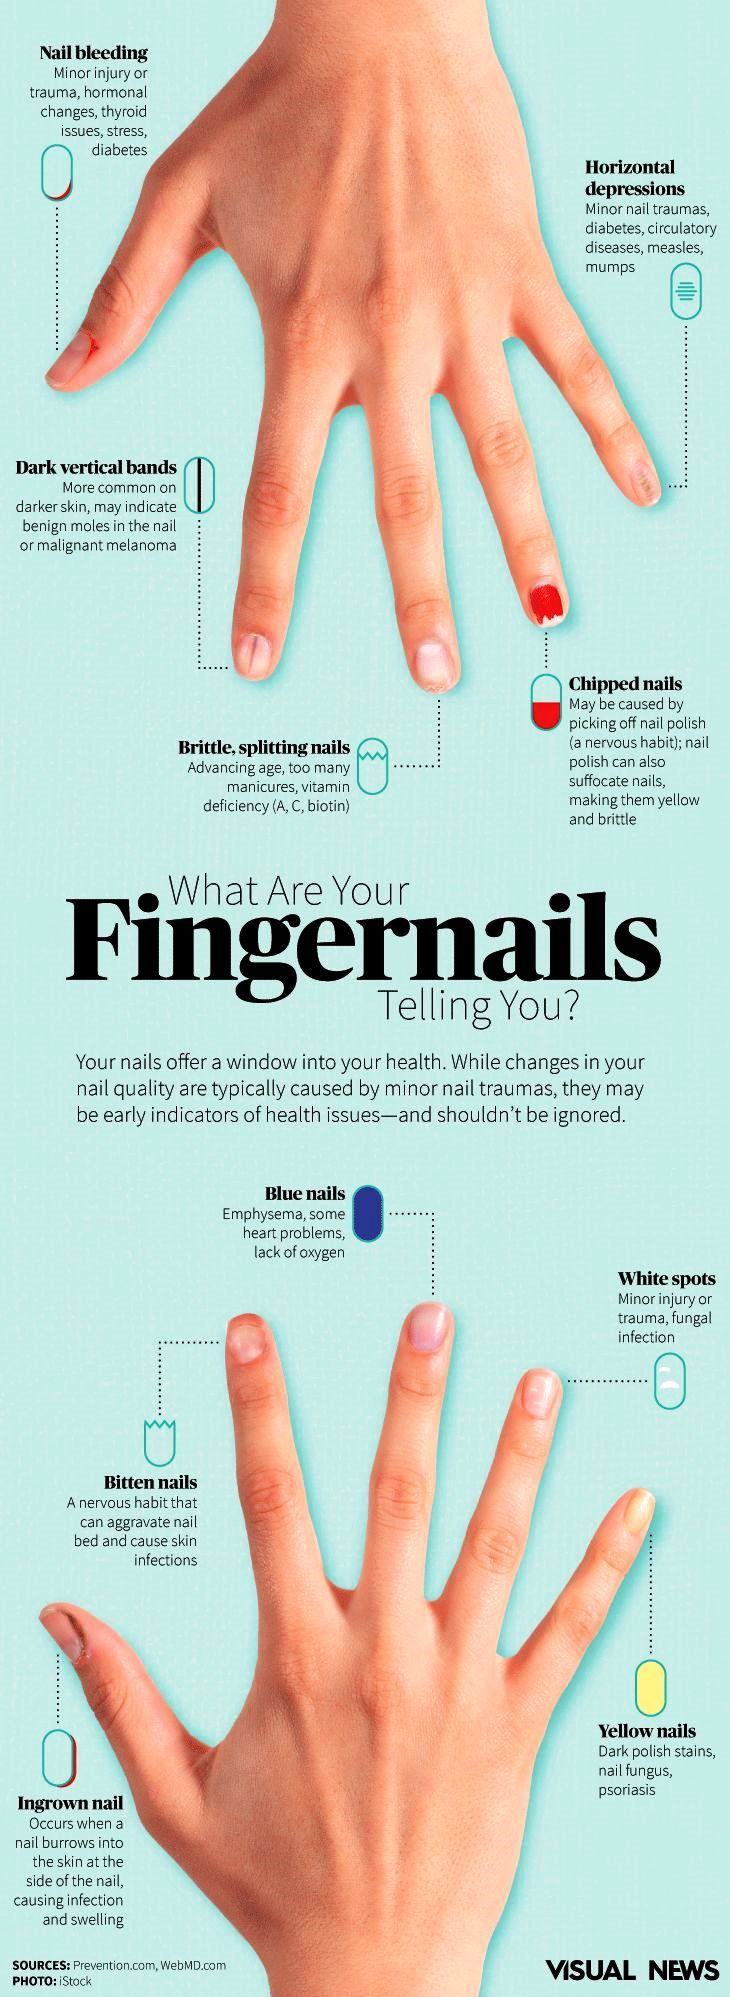 18 best Infographic images on Pinterest | Health, Healthy eating ...